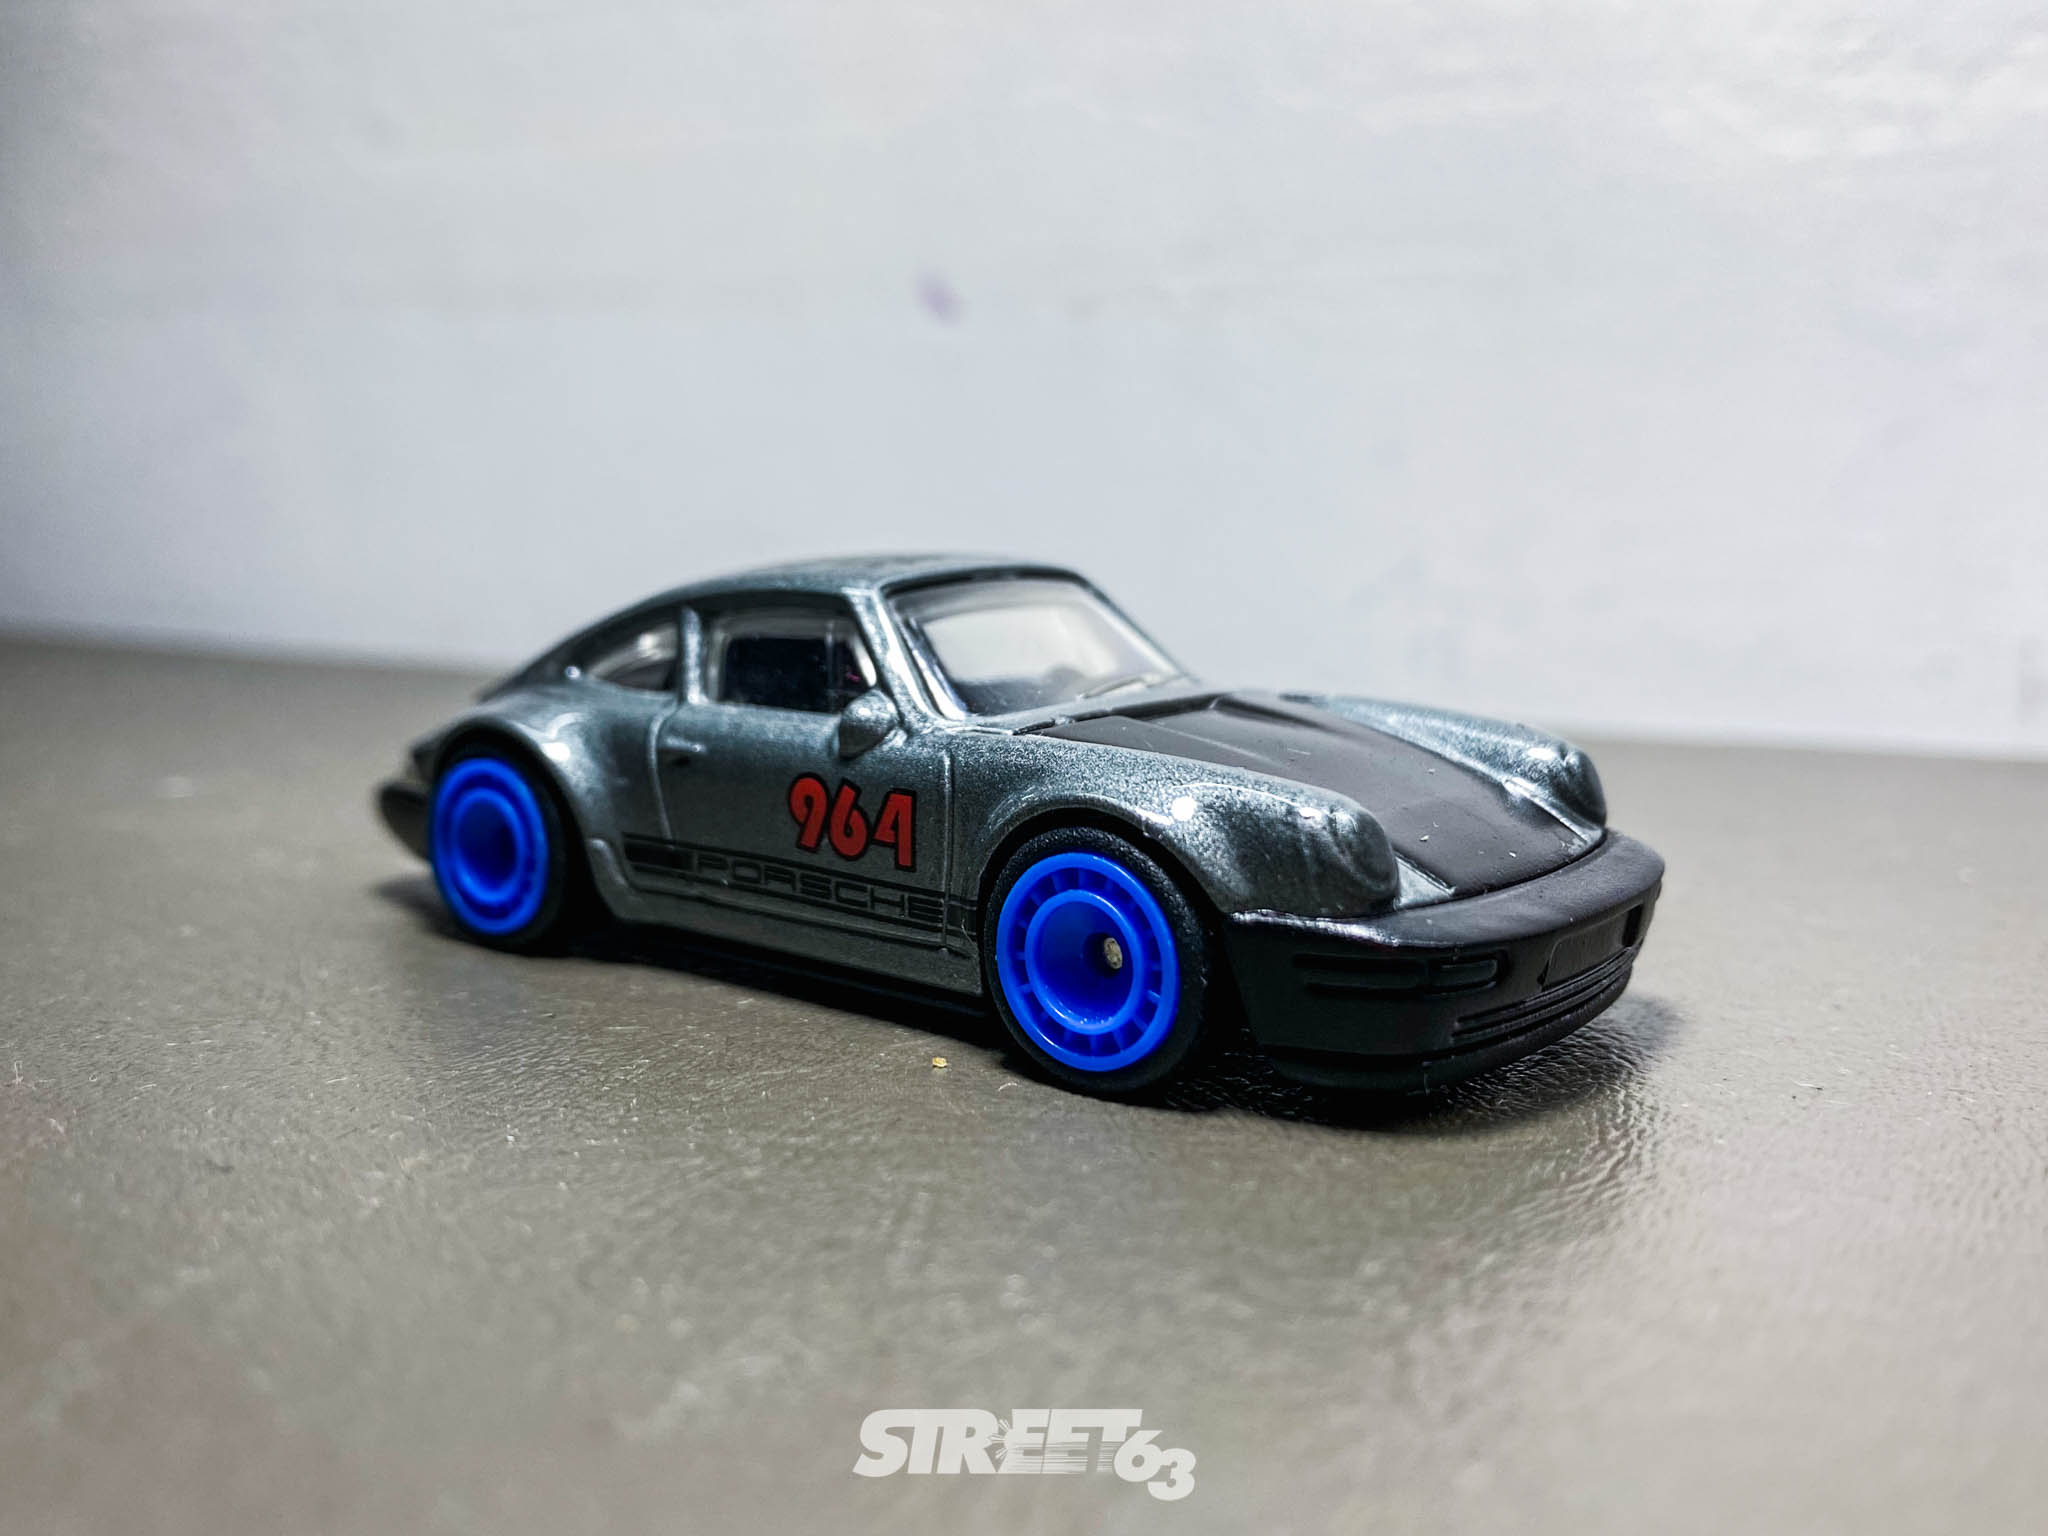 Mini63: The Street63 Diecast Collection 30